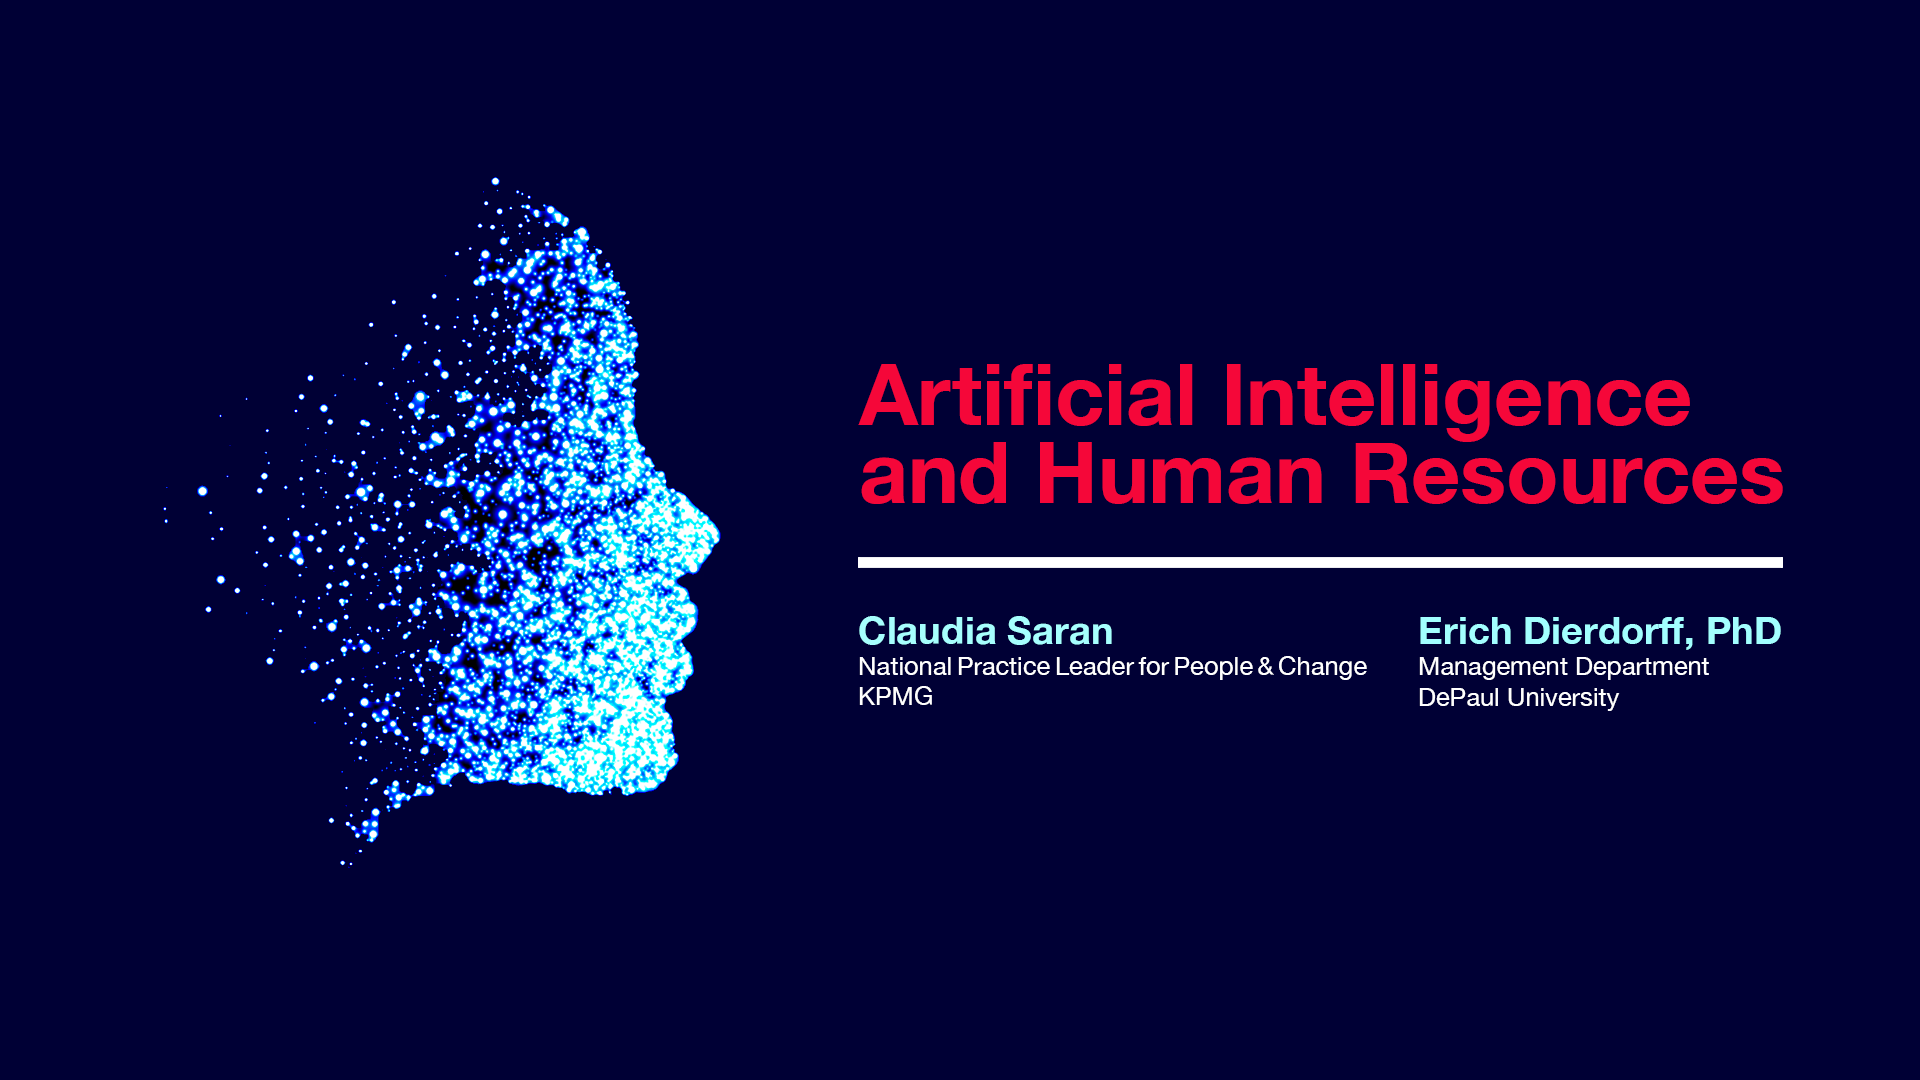 AI and Human Resources Banner